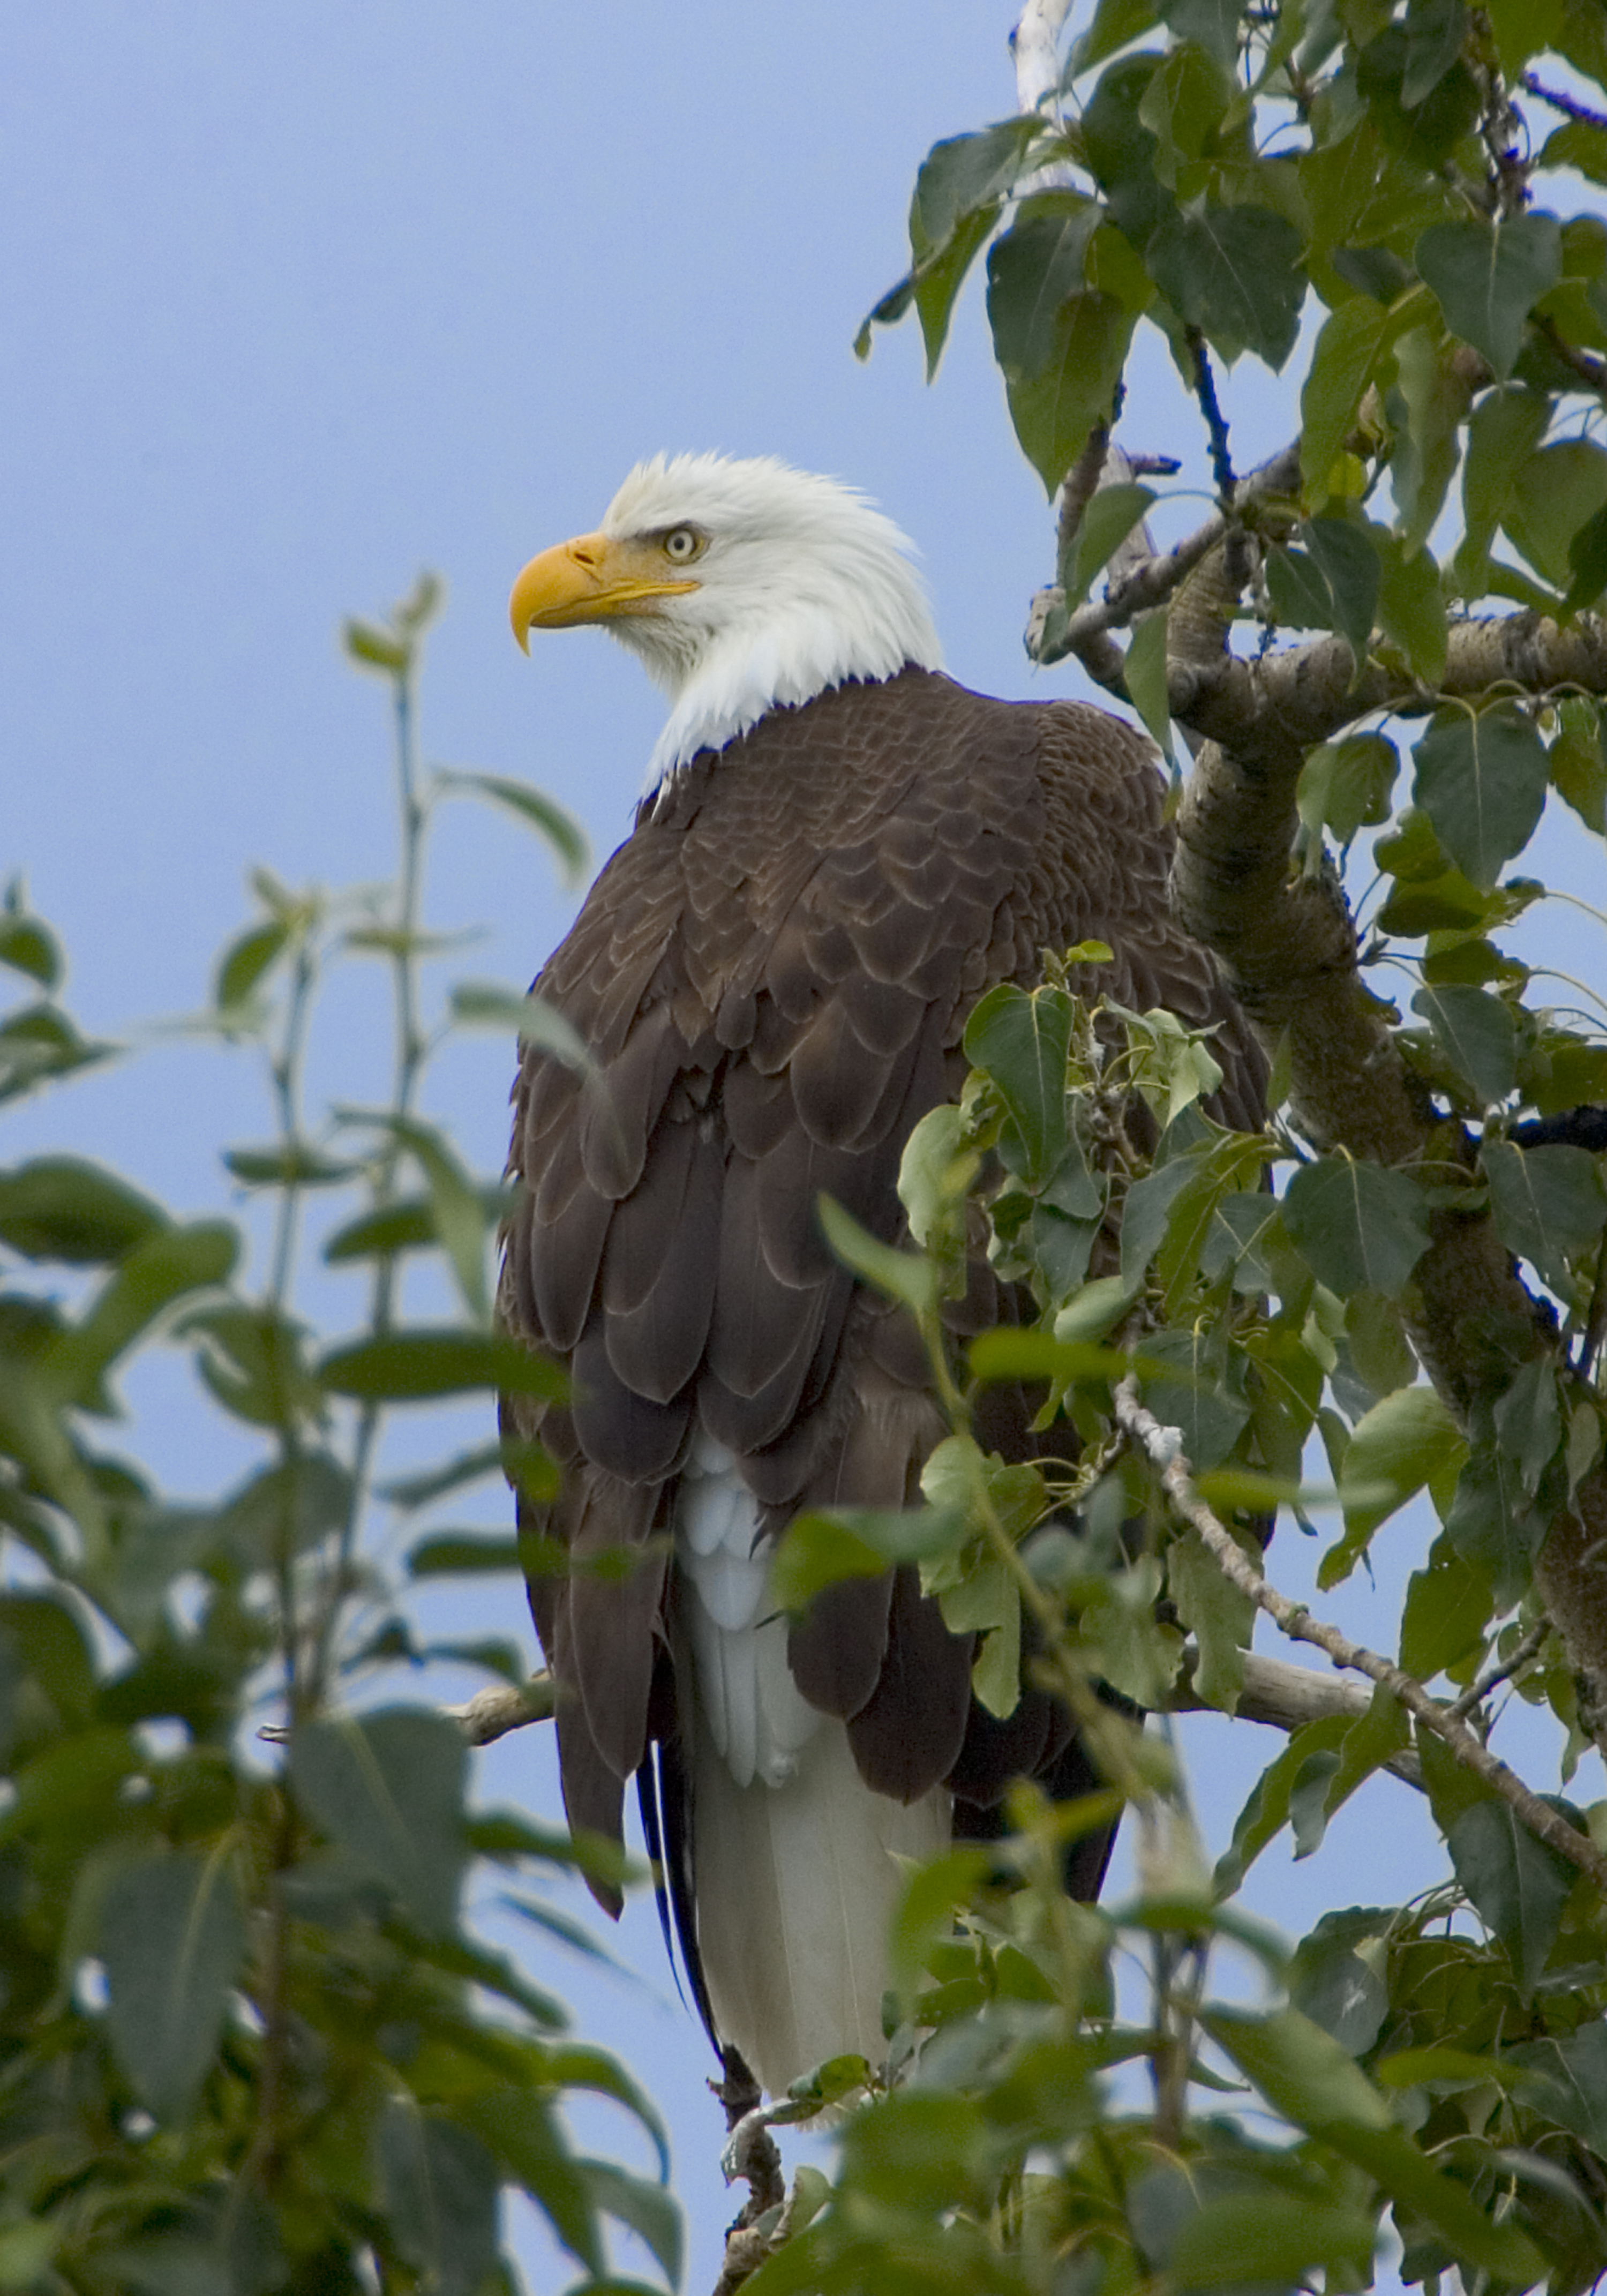 bald eagle endangered species The bald eagle as an endangered species the bald eagle is the most well known endangered species because it is the nation's symbol it is suppose to stand for freedom.